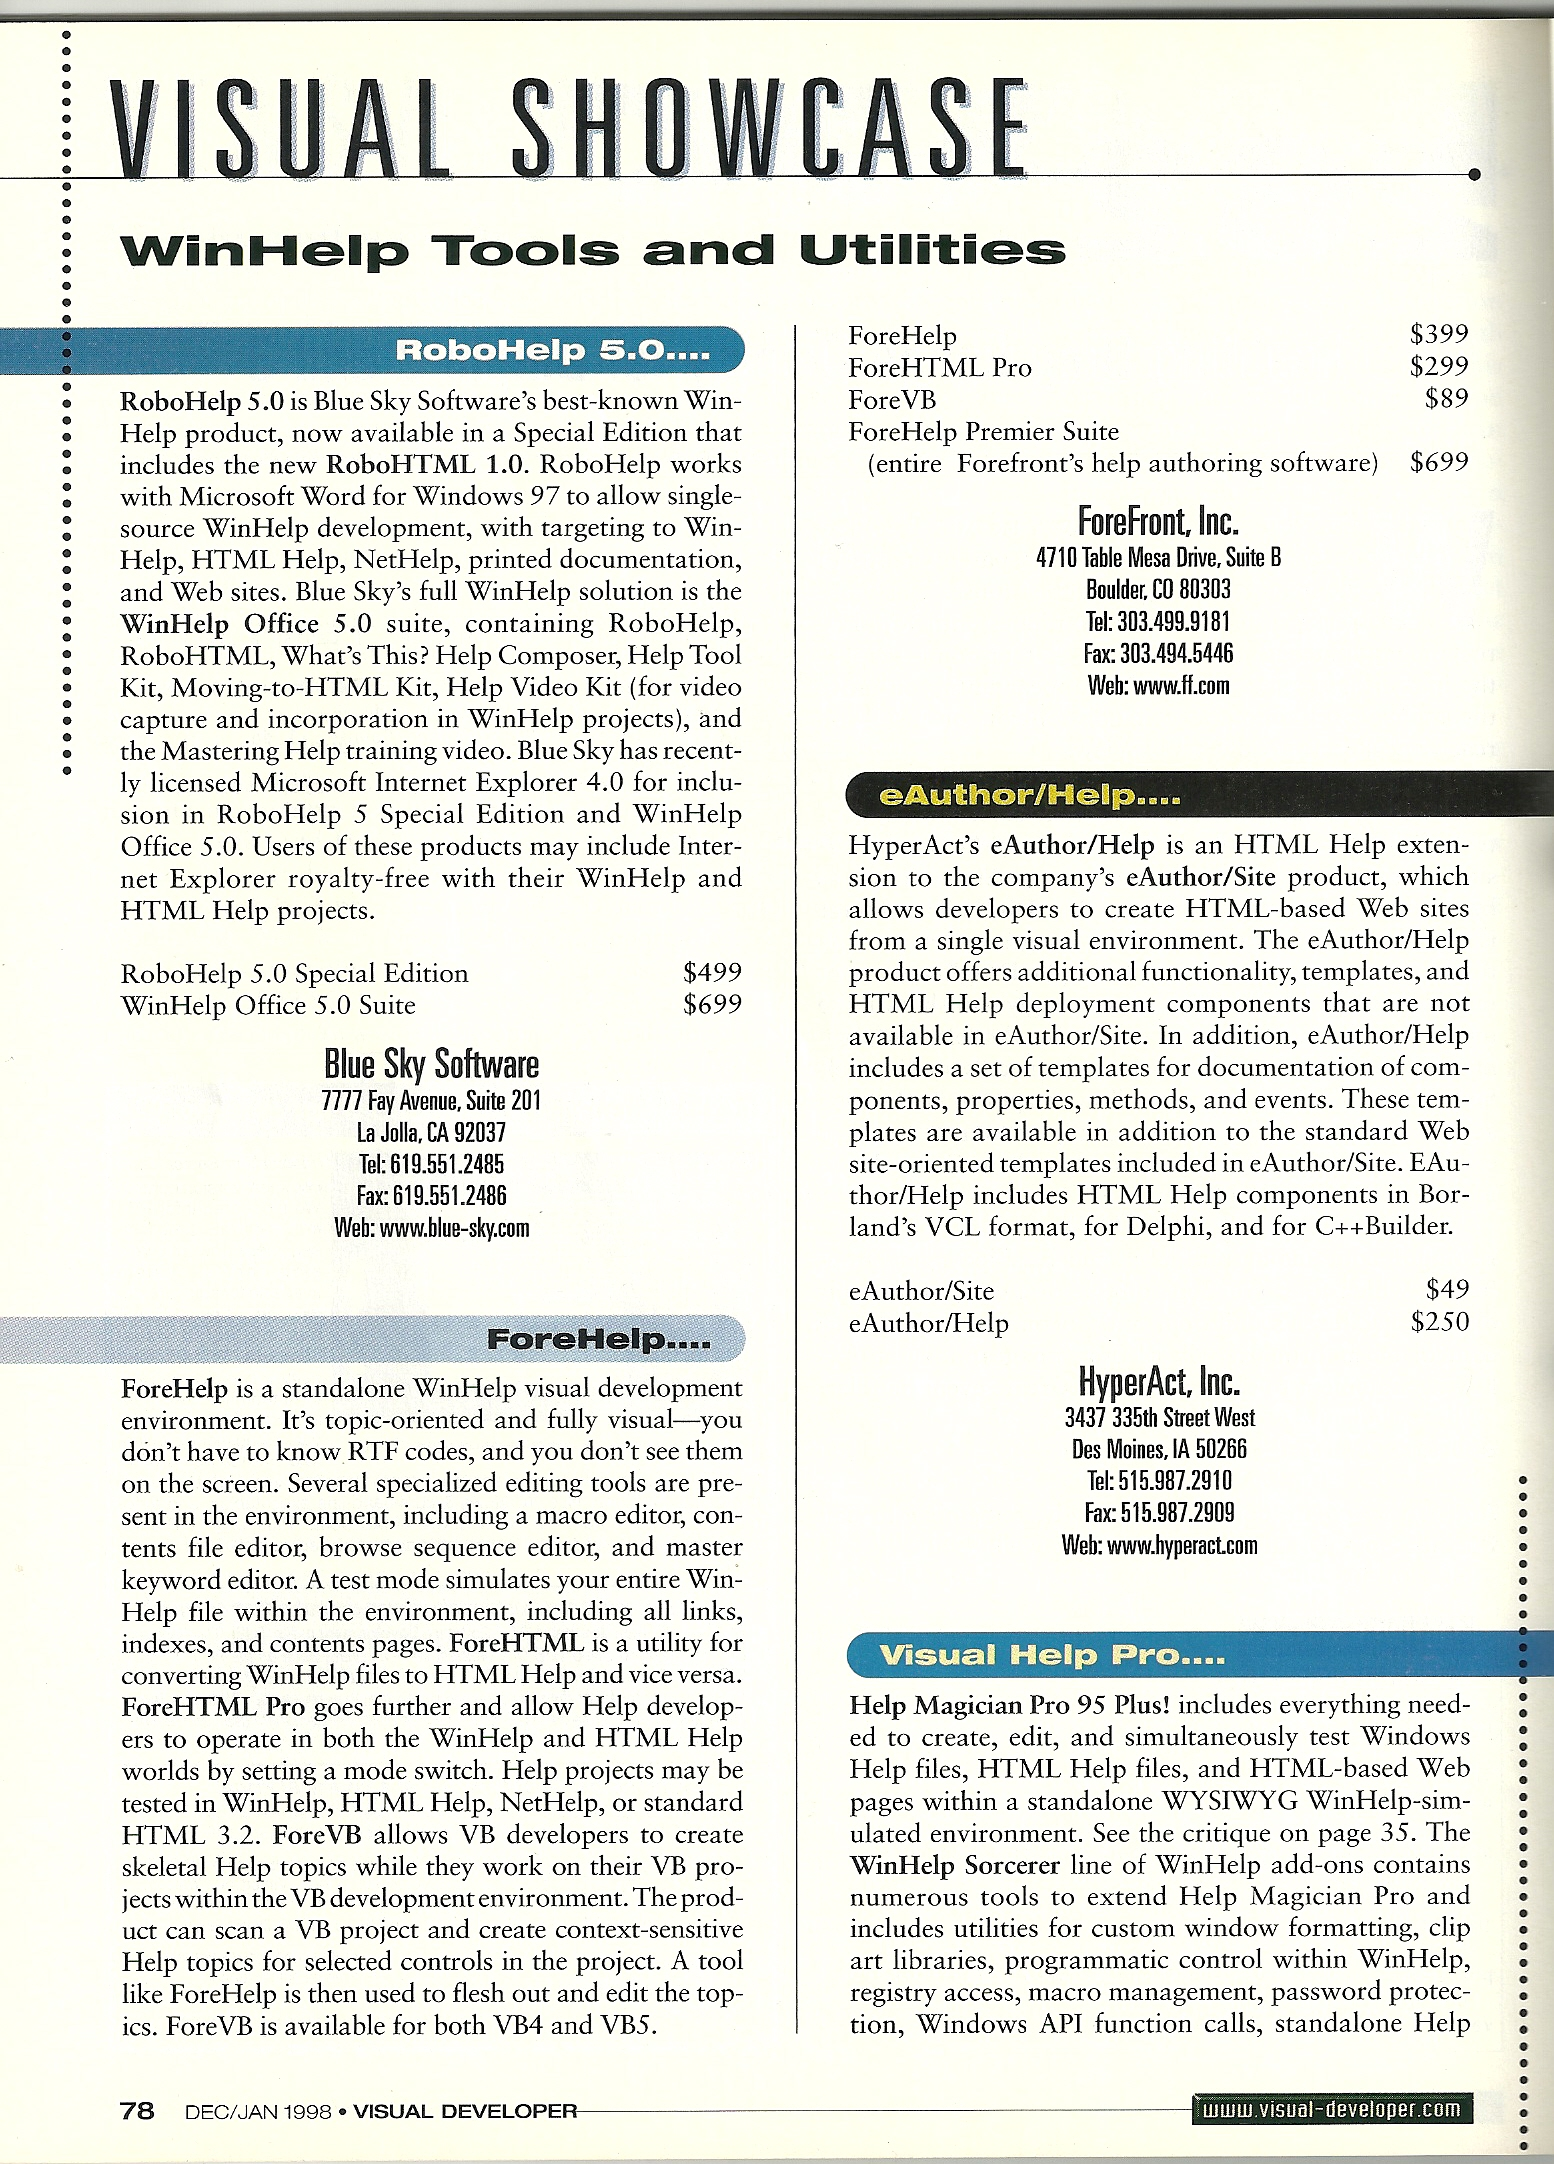 Visual Showcase of Help Authoring Tools, Jan '98, 1 of 2